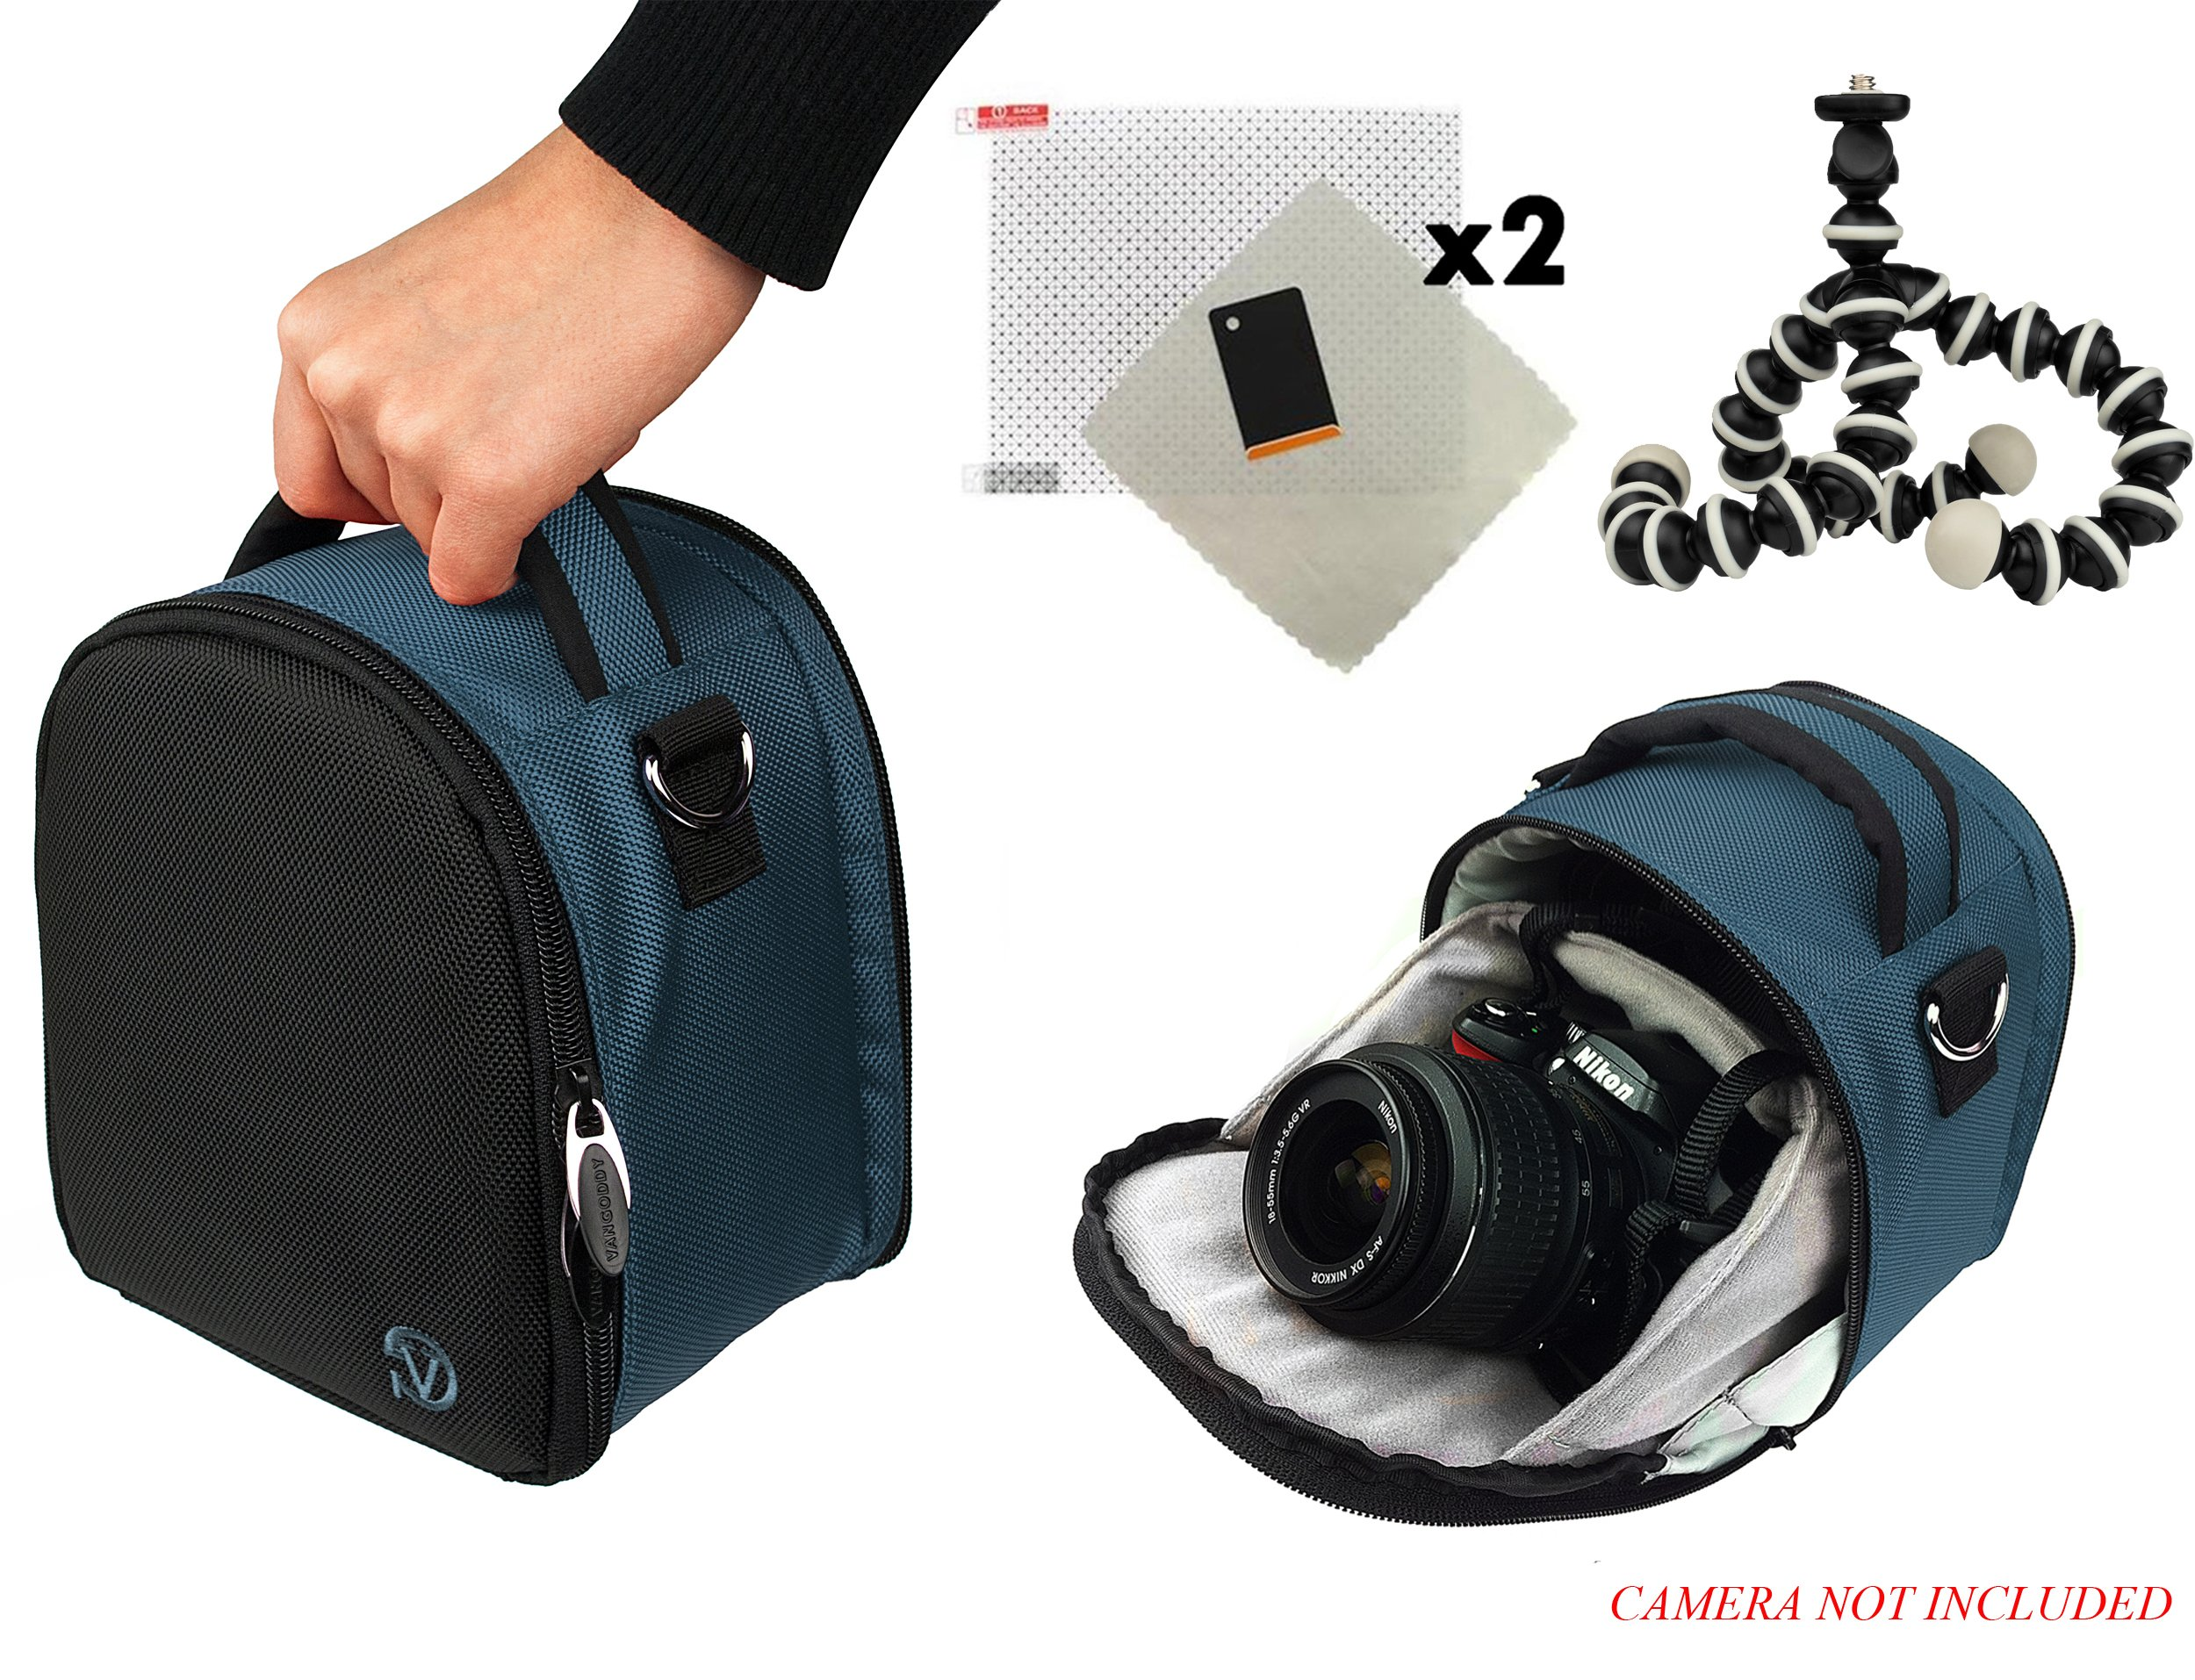 Laurel Travel Camera Bag Case For Sony Alpha A6000, A7, A7R, A7s, DSC-HX400V DSLR Camera + Screen Protector + Screen Protector + Mini Tripod